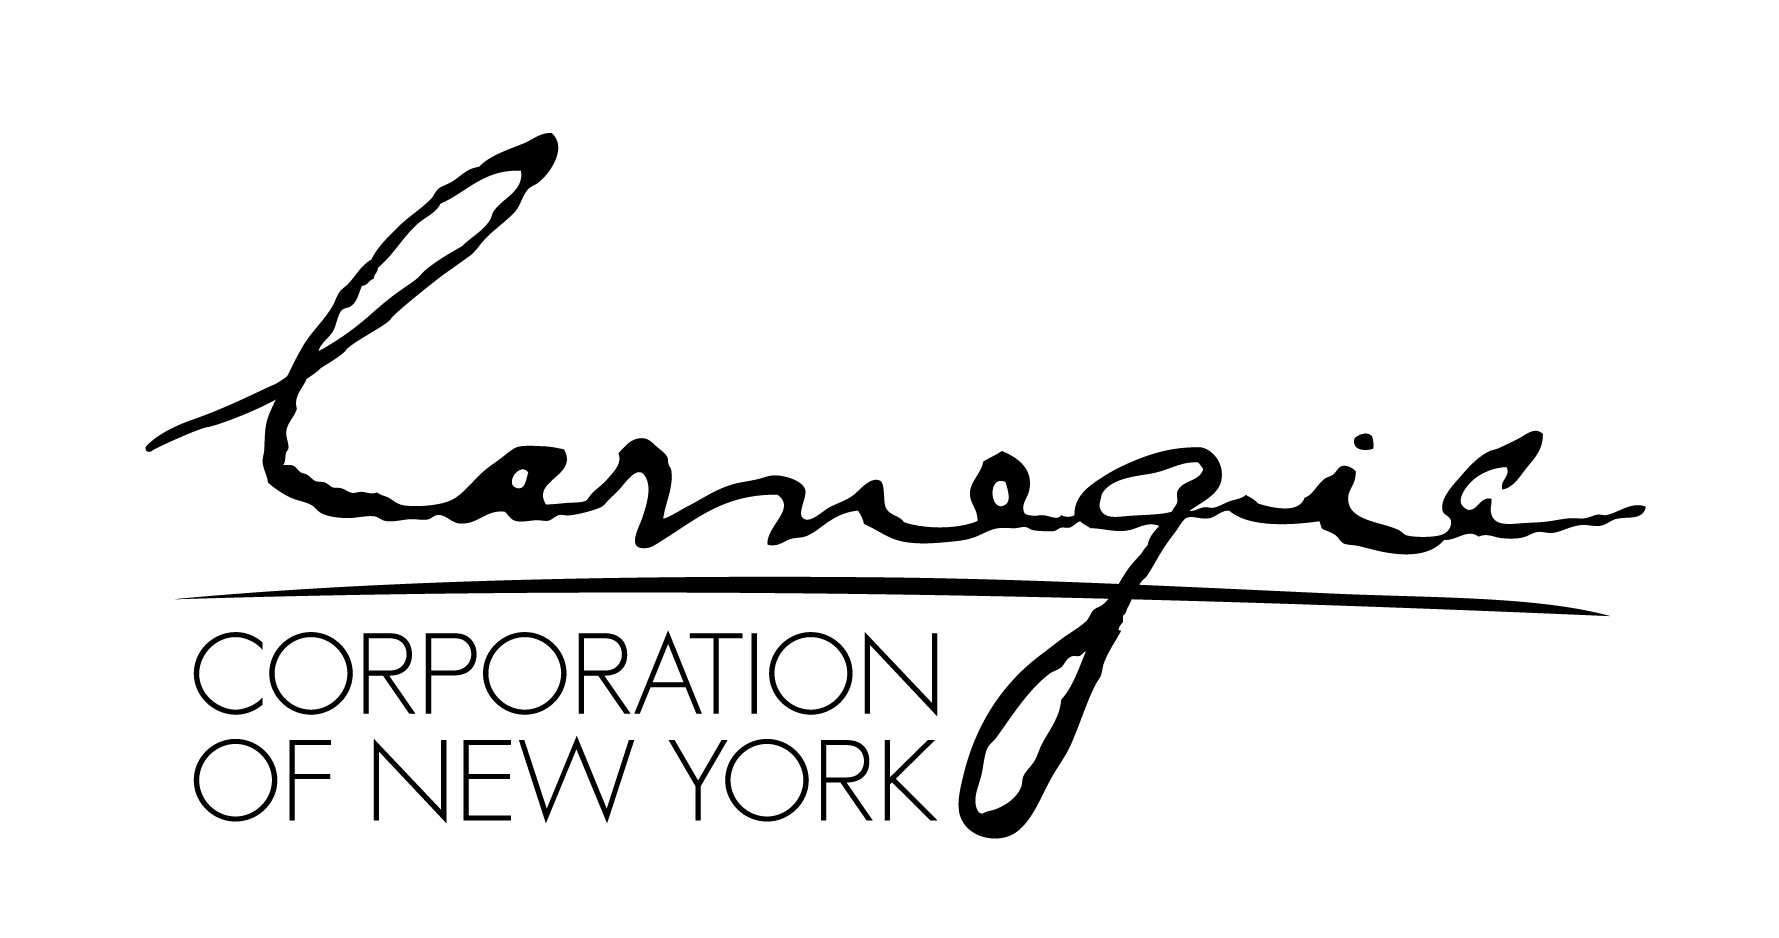 Carnegie Corporation of New York Client Kathleen Friery